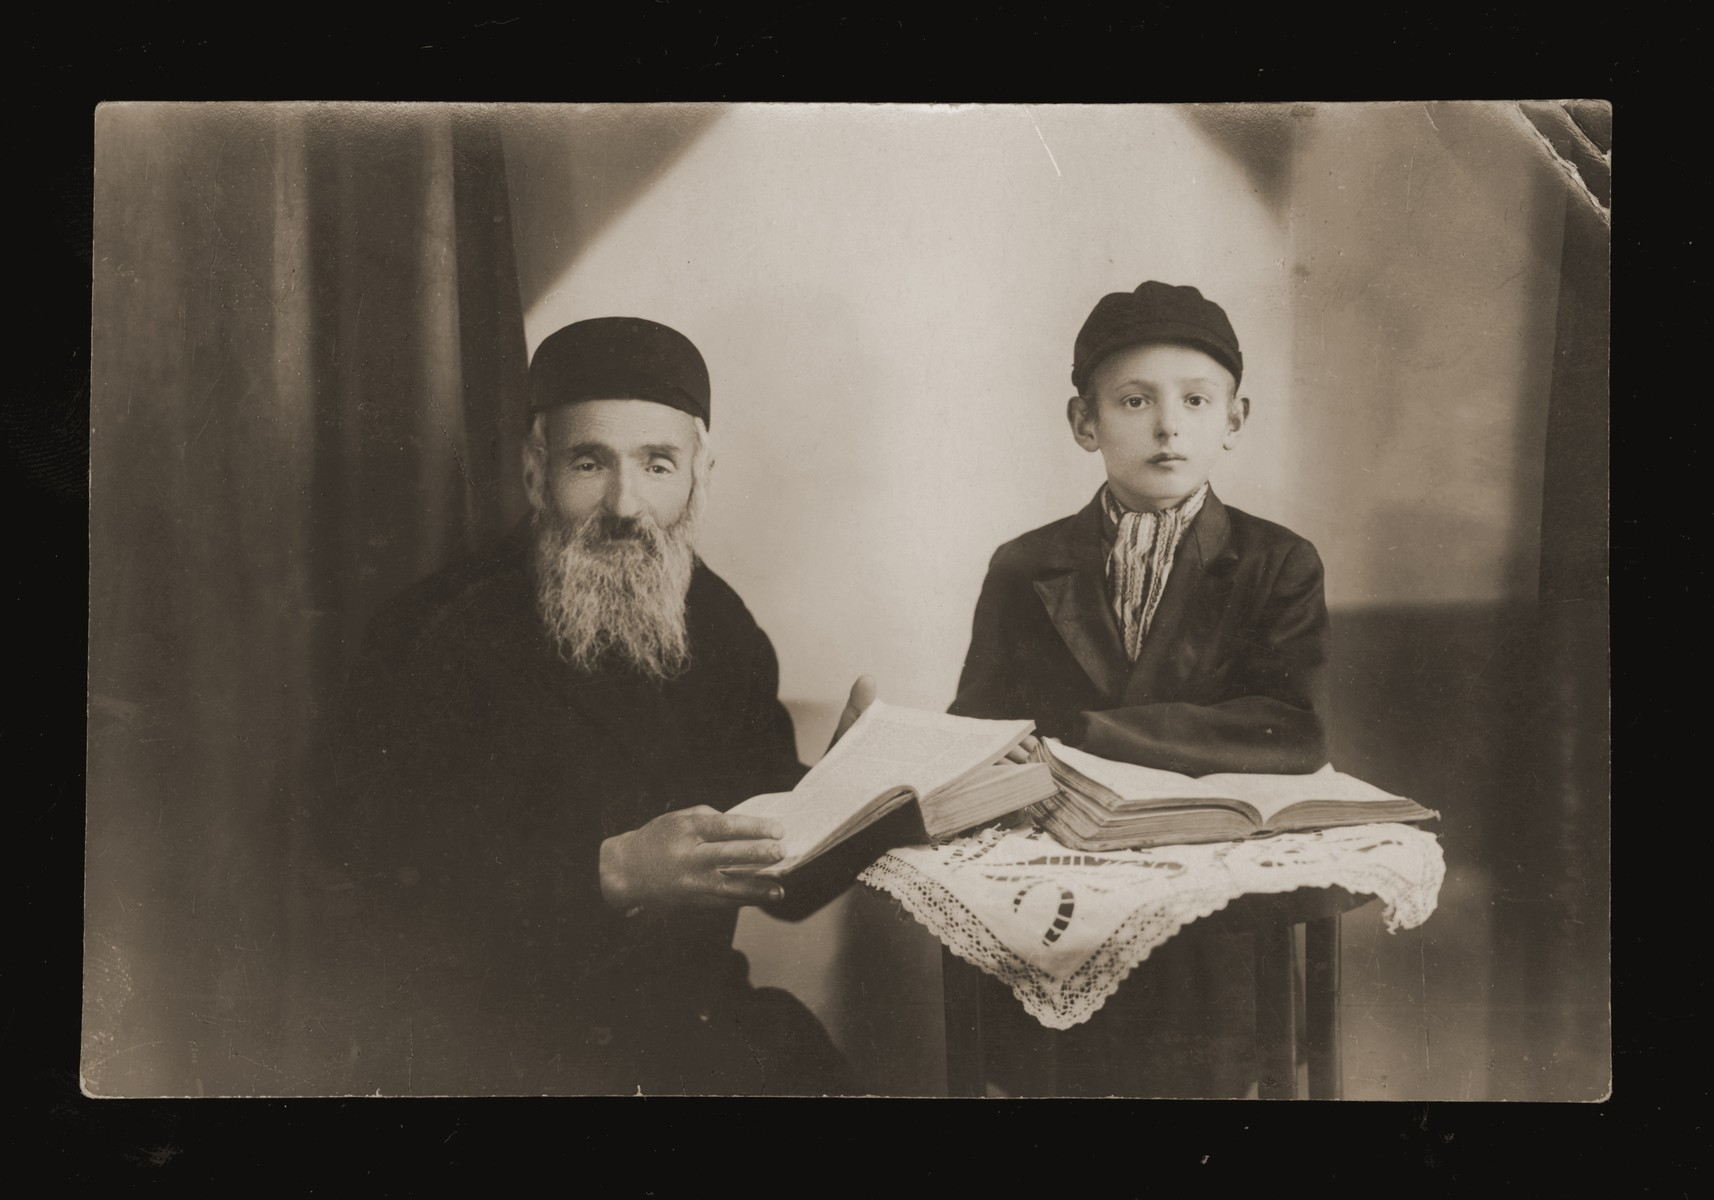 Portrait of an eldery Jewish man studying a religious text with a young boy.